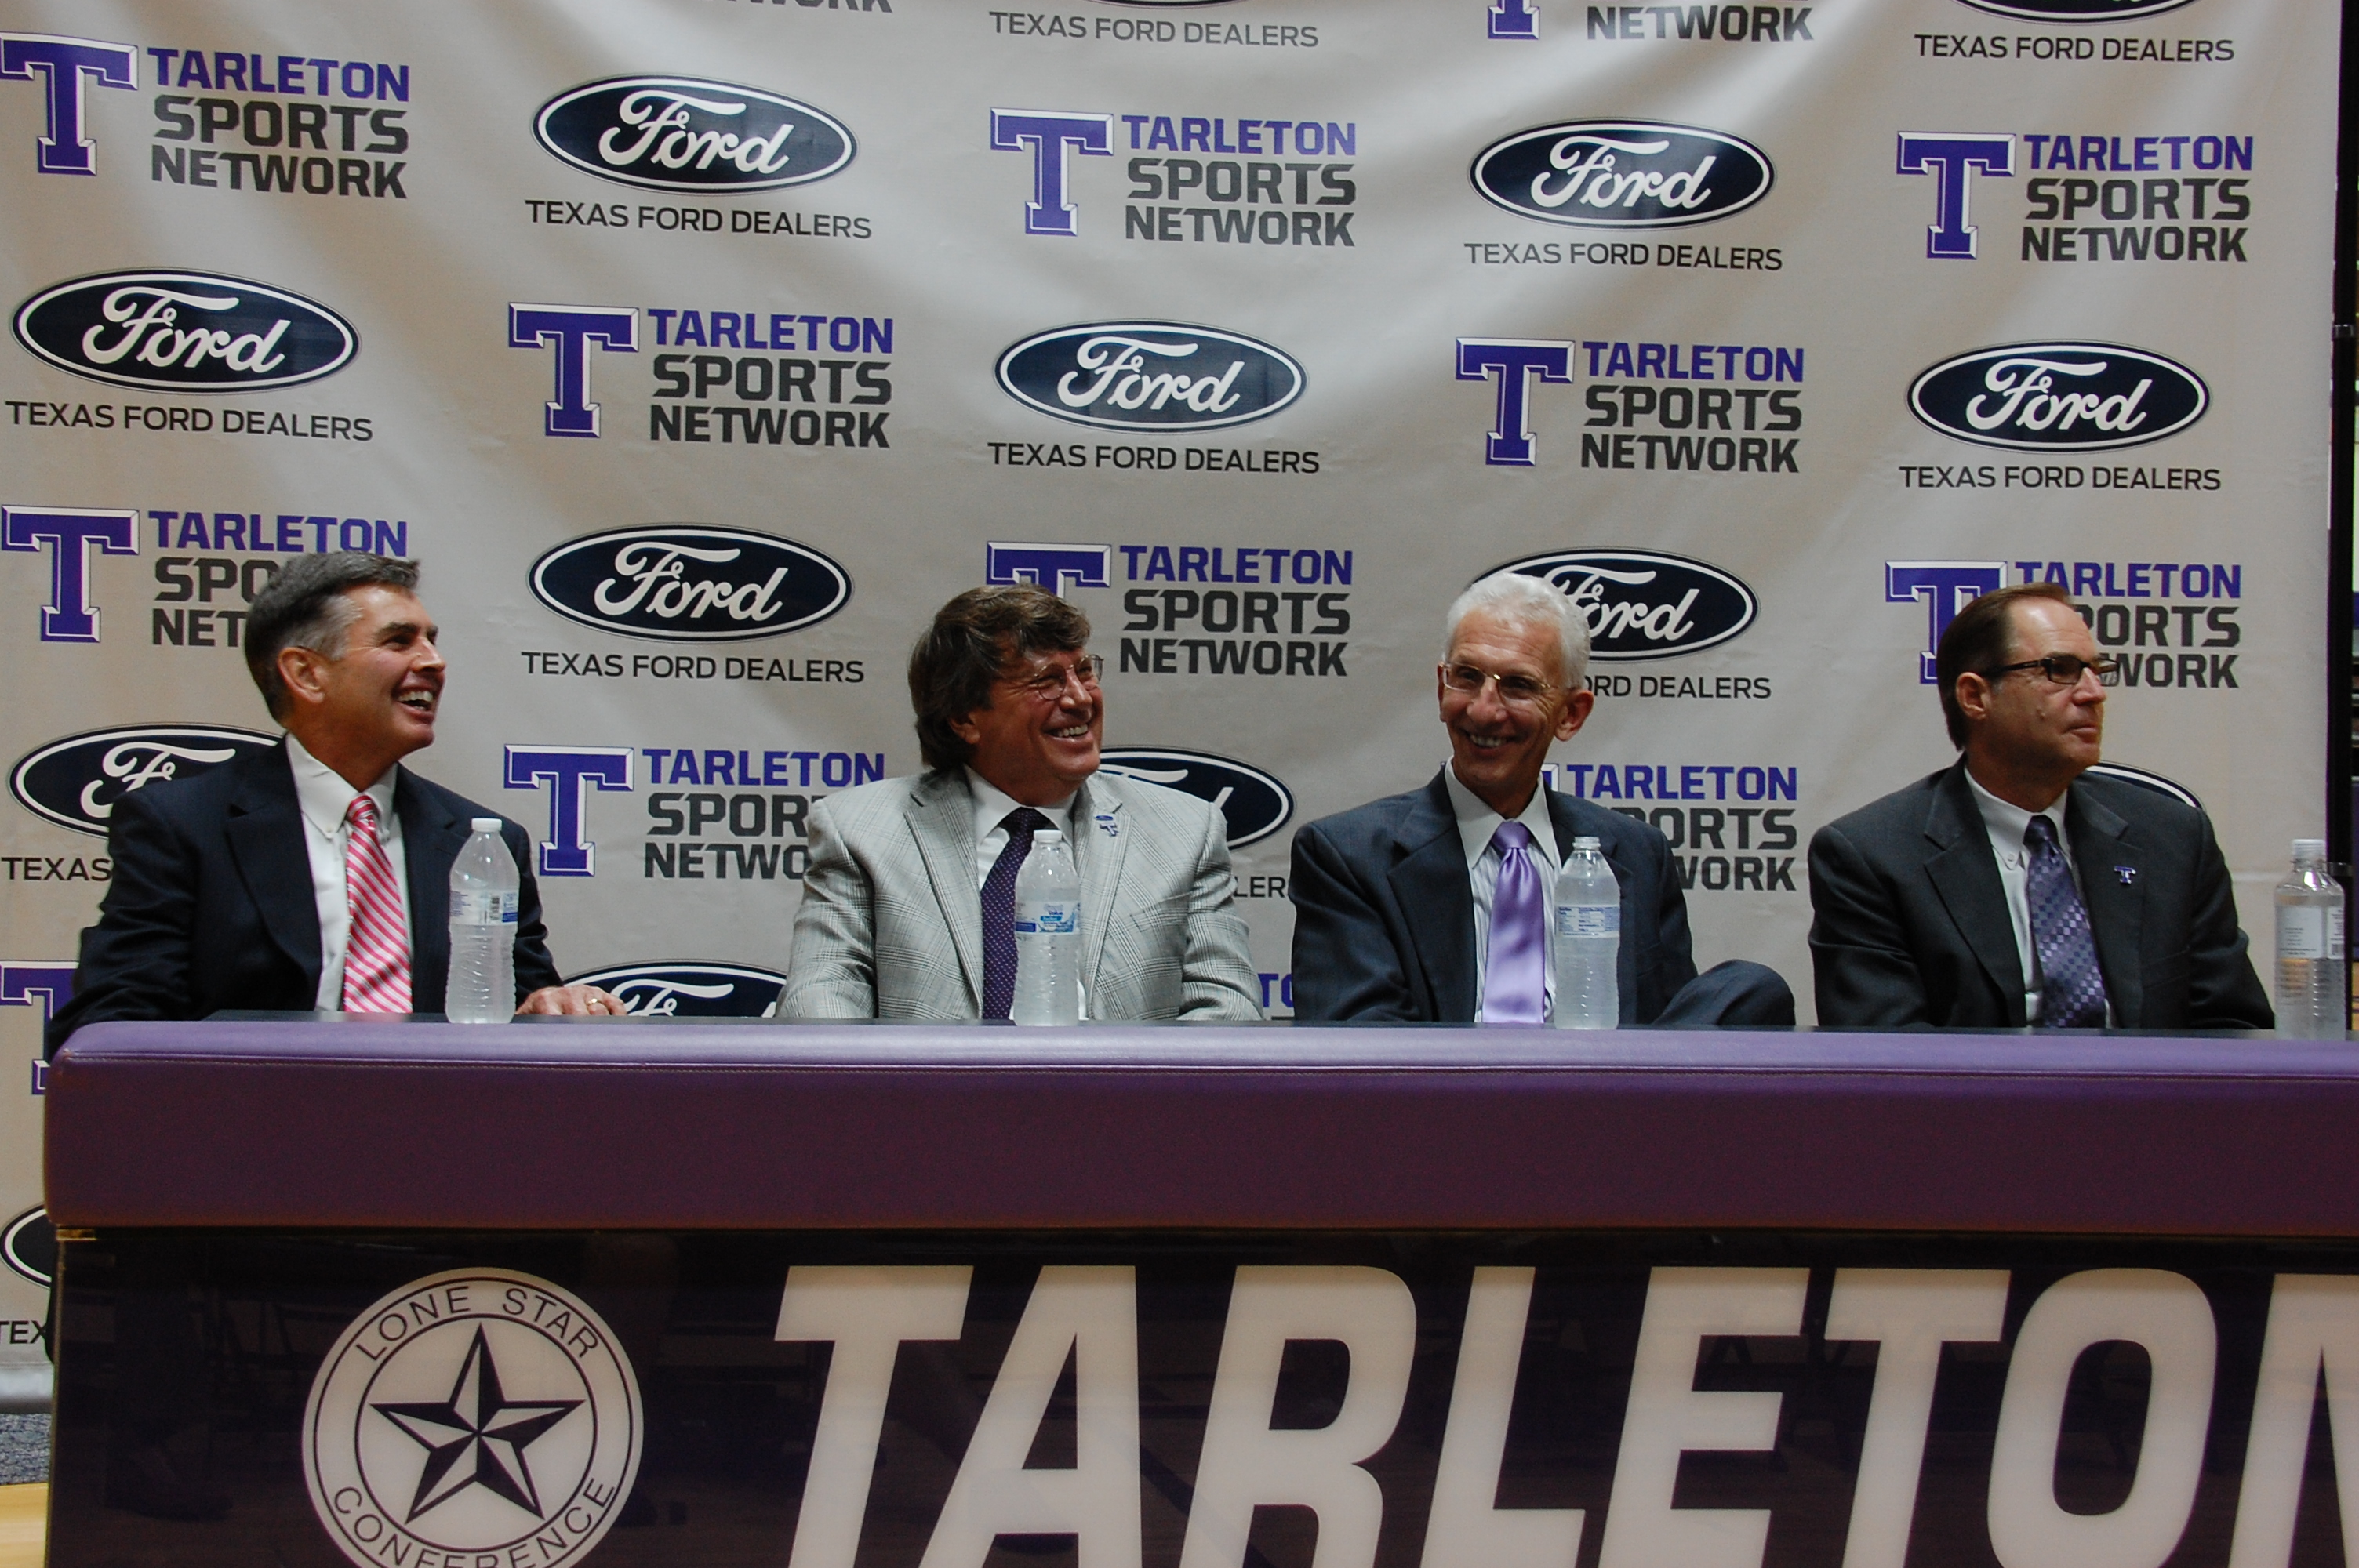 Tarleton Sports Network partners up with Ford – Texan News Service